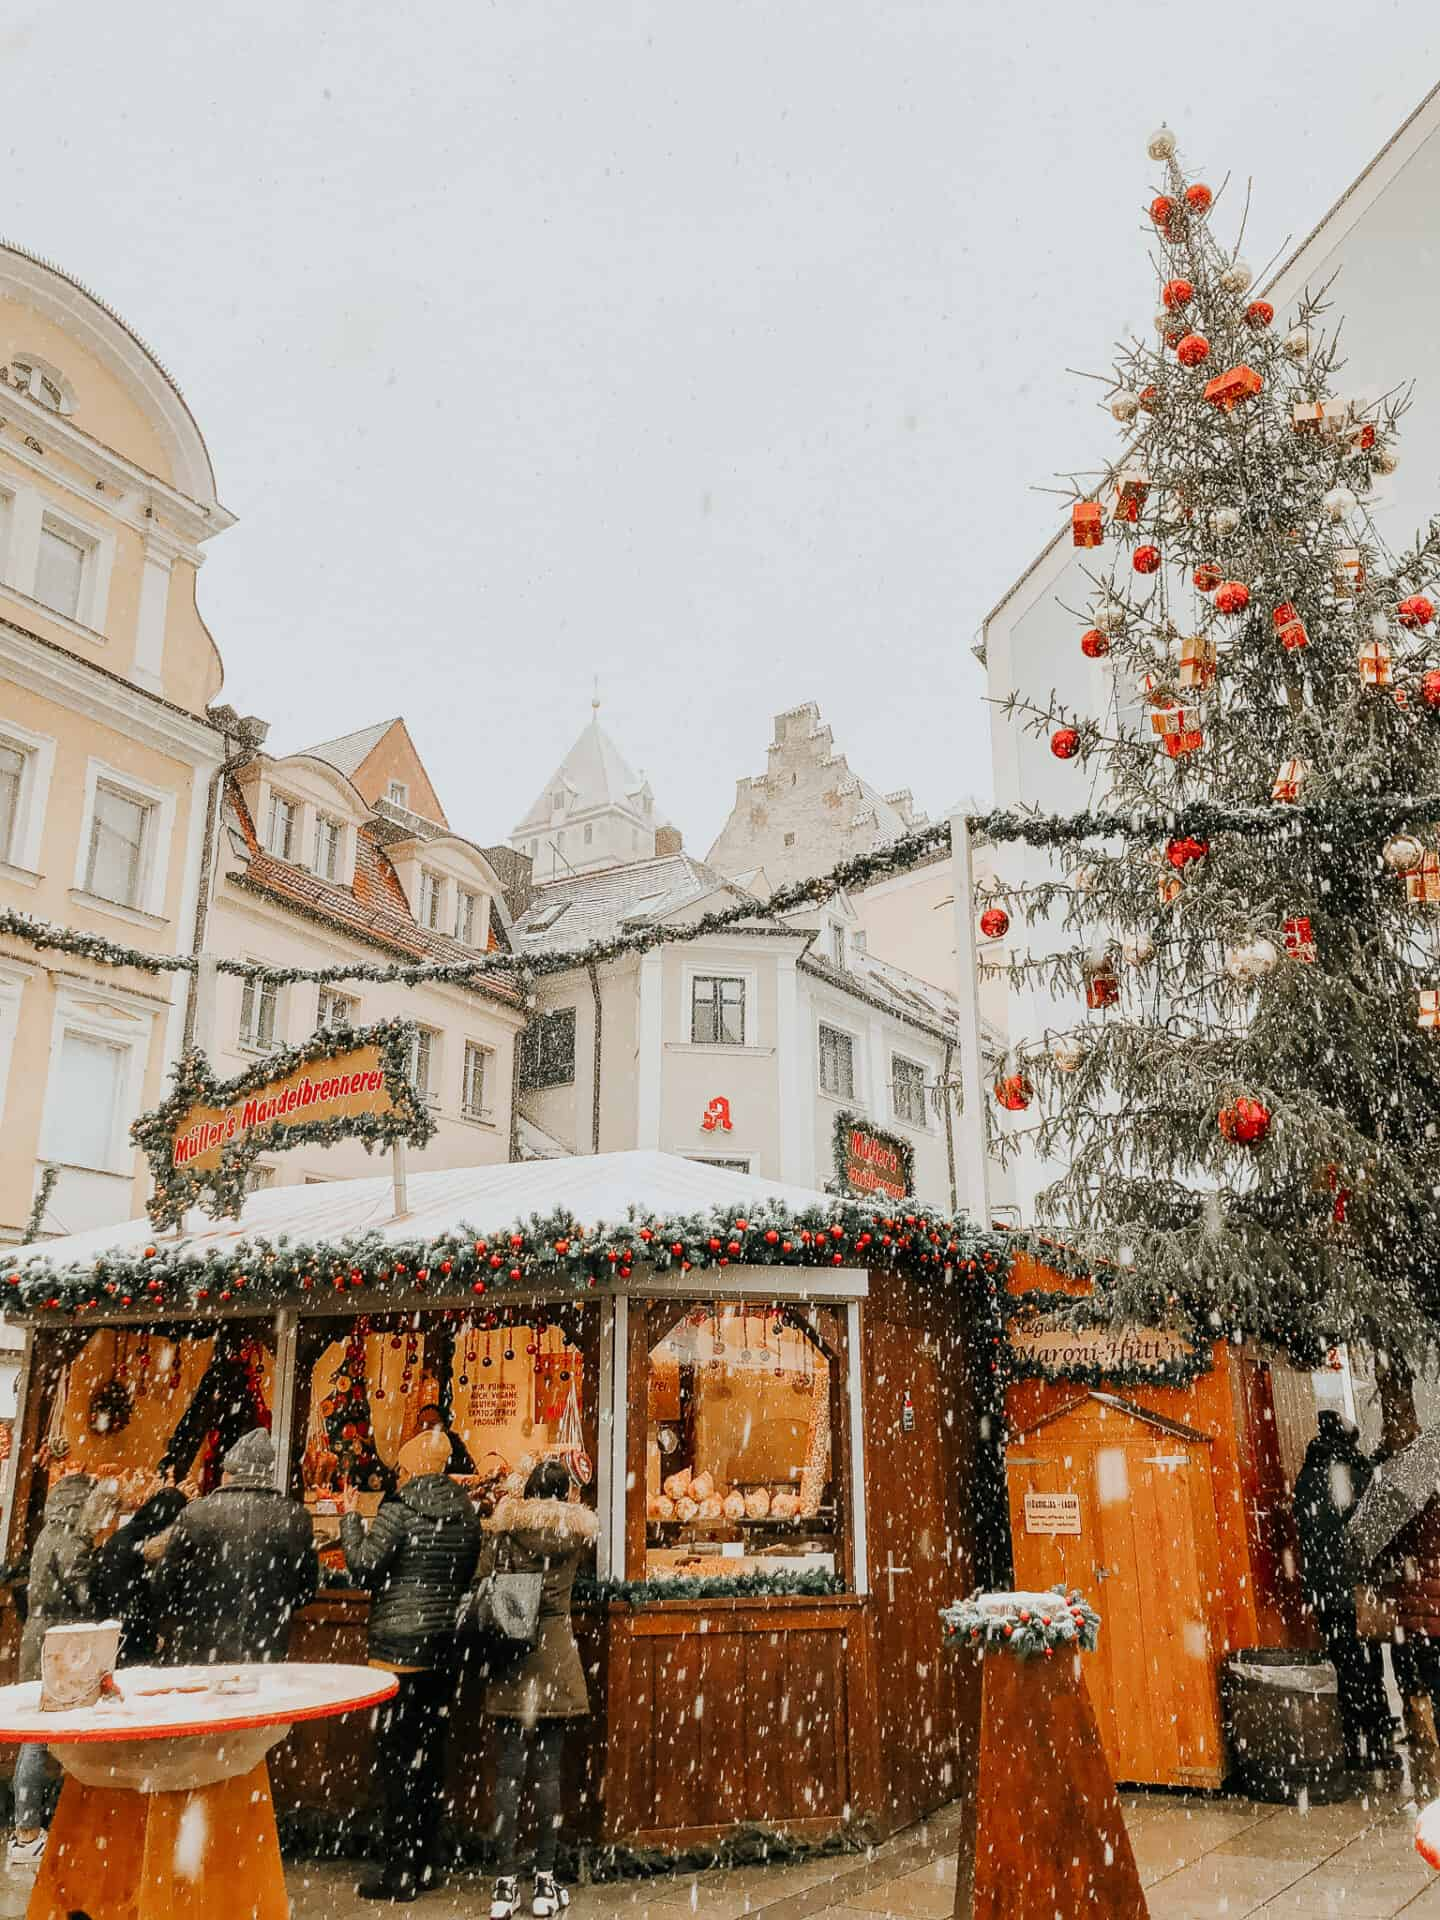 Snow Falling at Christmas Market